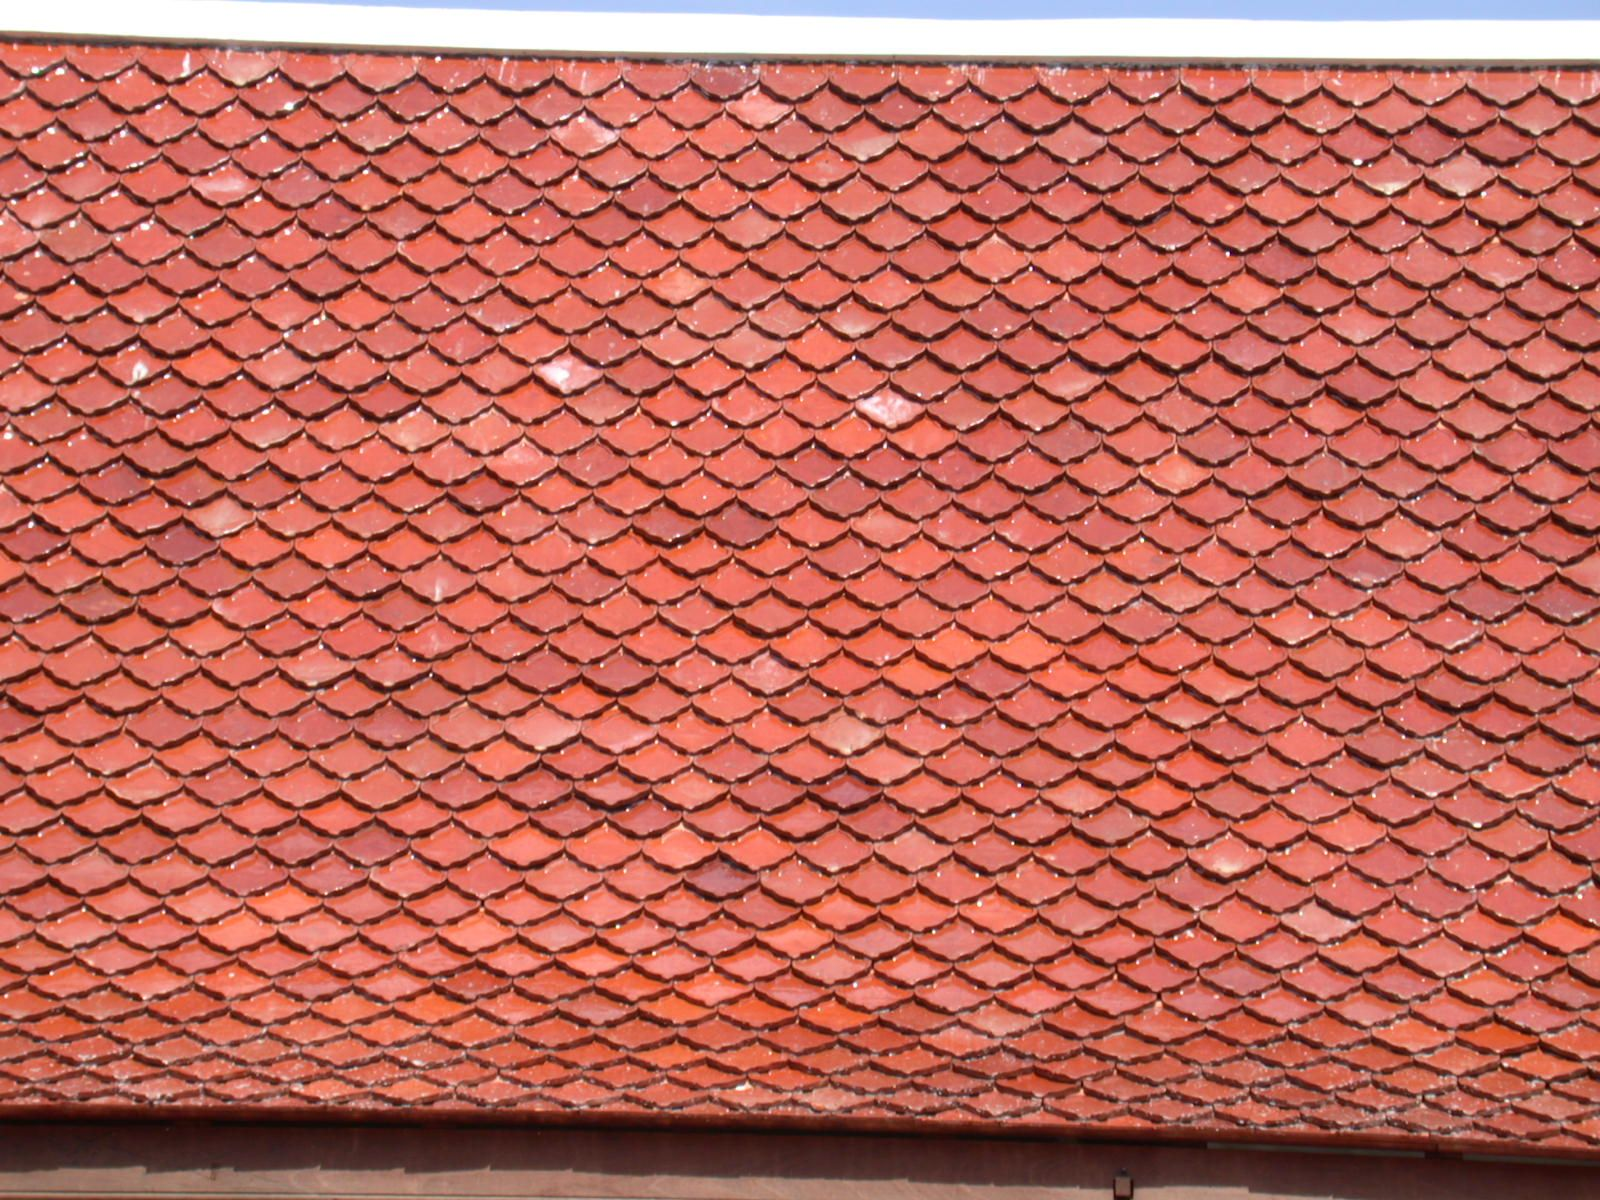 Having Storm Red Tile Roof At Home Really Is One Of The